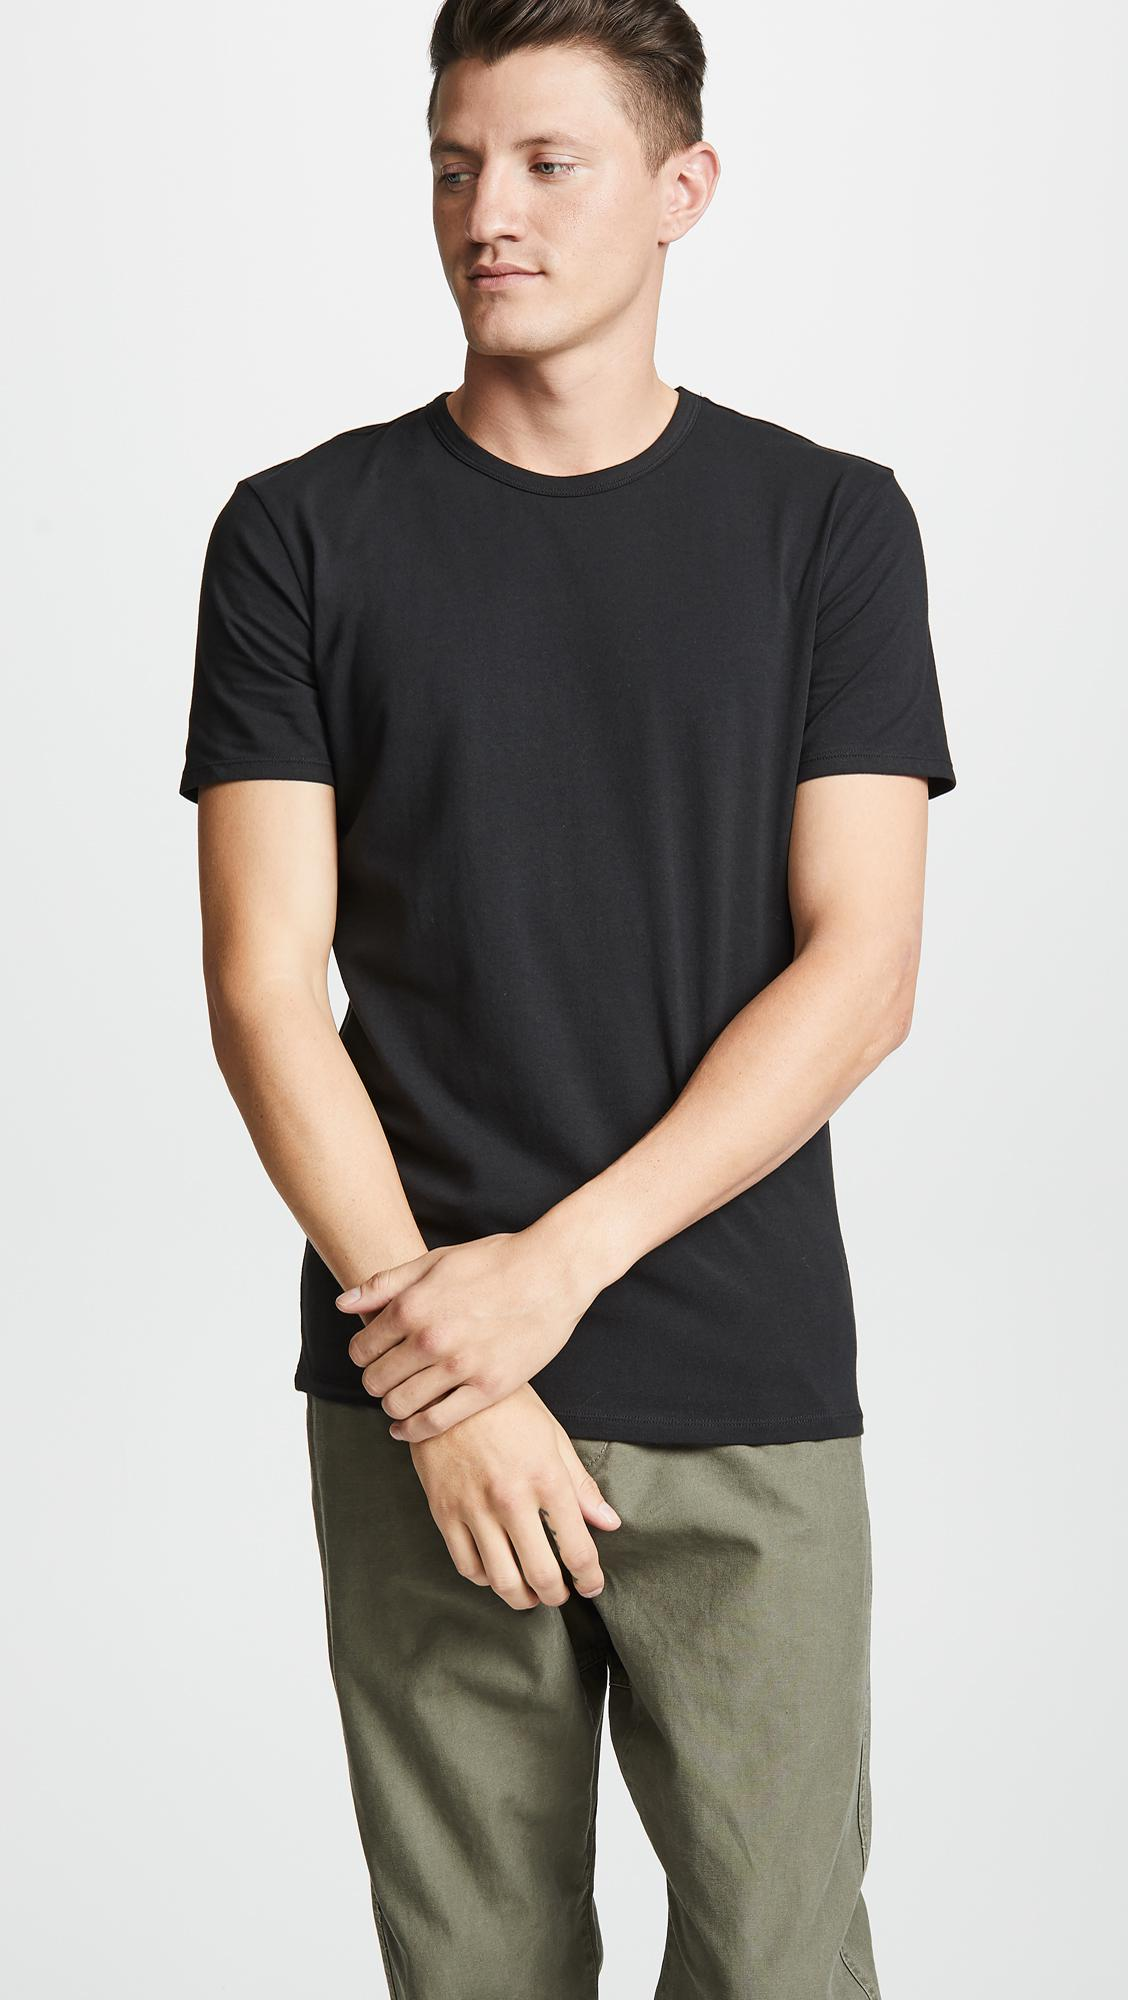 75d6f4362c473a Calvin Klein - Black 2 Pack Cotton Stretch Crew Neck Tee for Men - Lyst.  View fullscreen